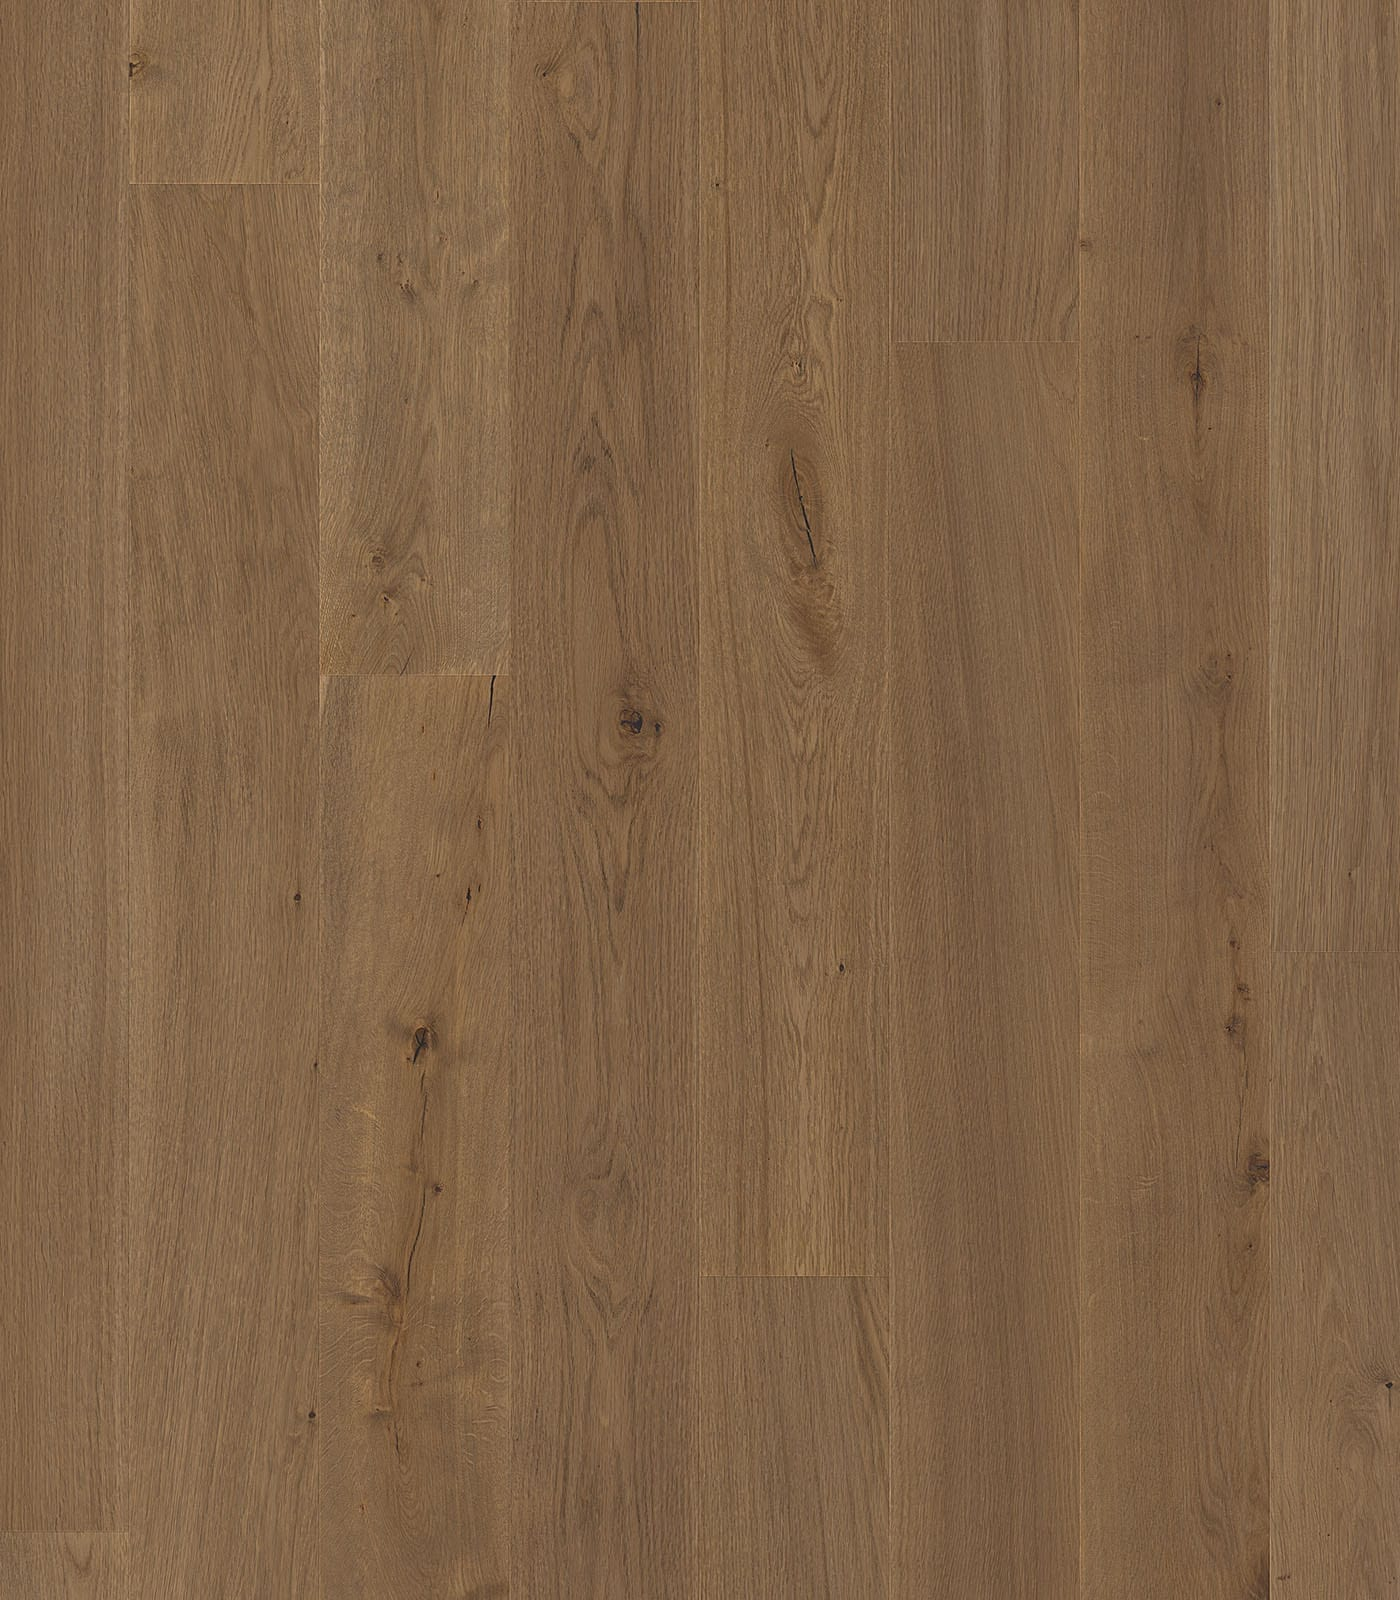 Amboseli-European Oak floors-Lifestyle Collection-flat